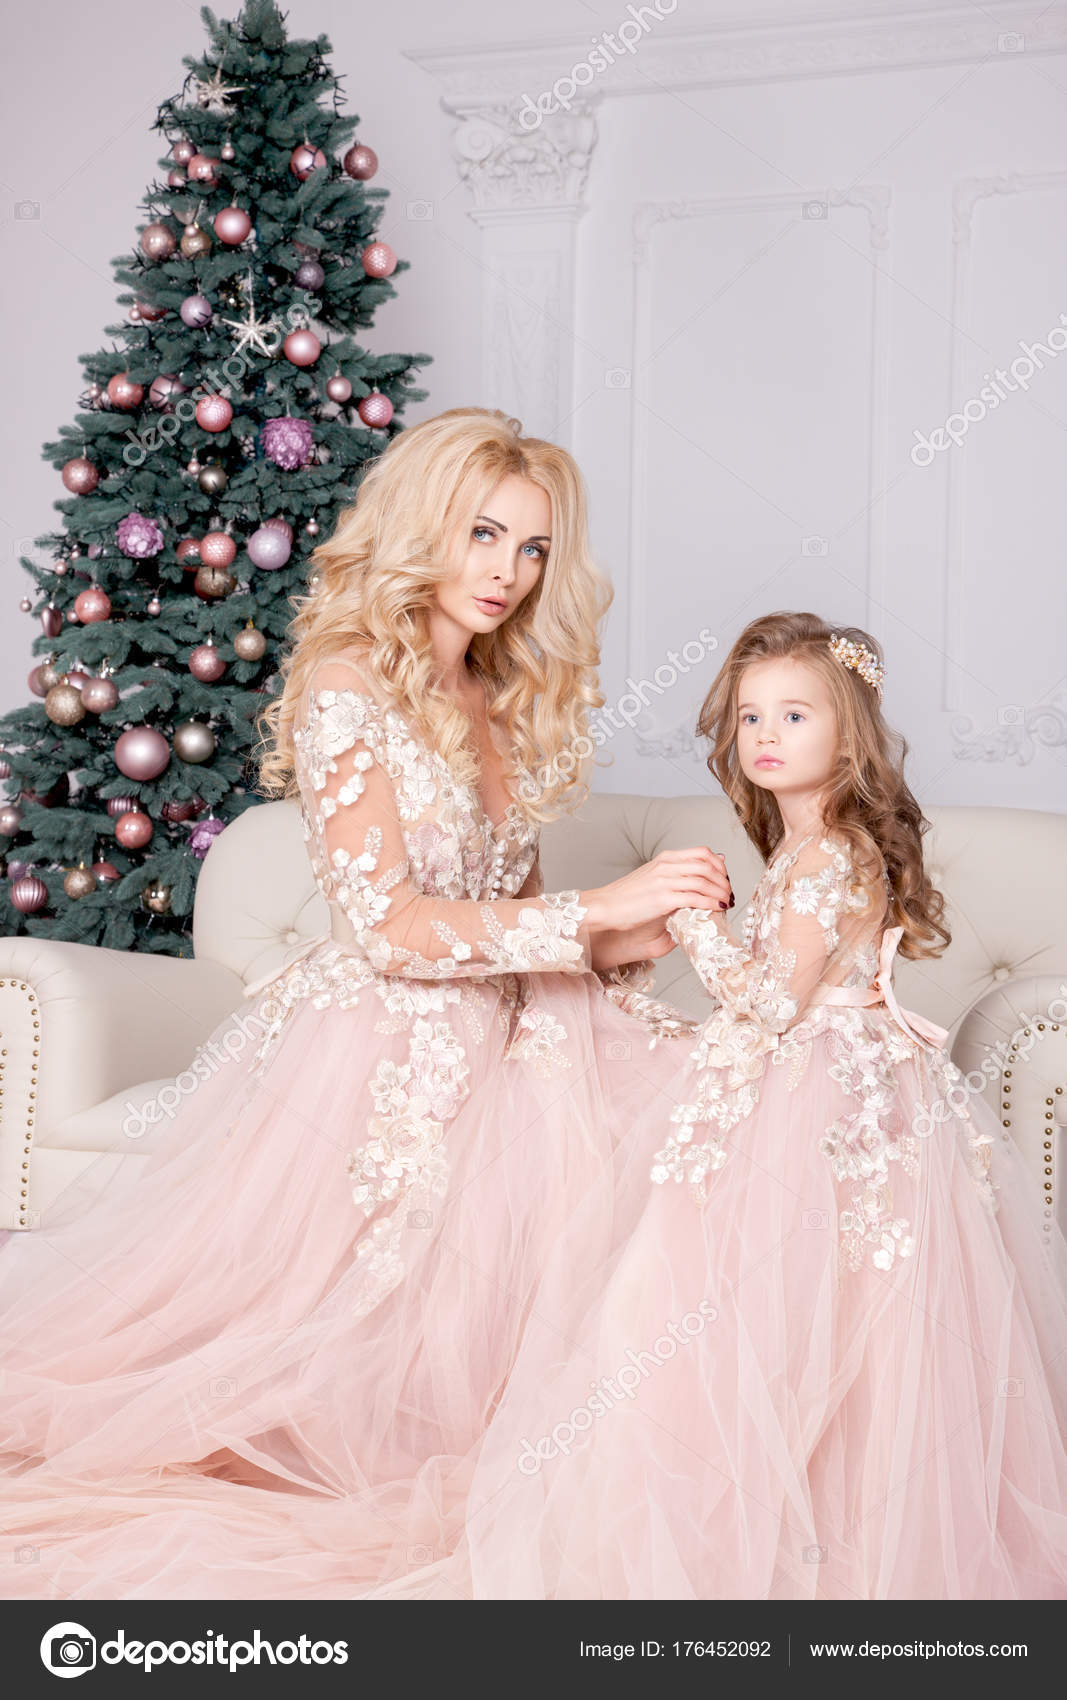 Christmas Gifts For Mom From Daughter.Mom Daughter Wearing Pink Dresses Holding Christmas Gifts